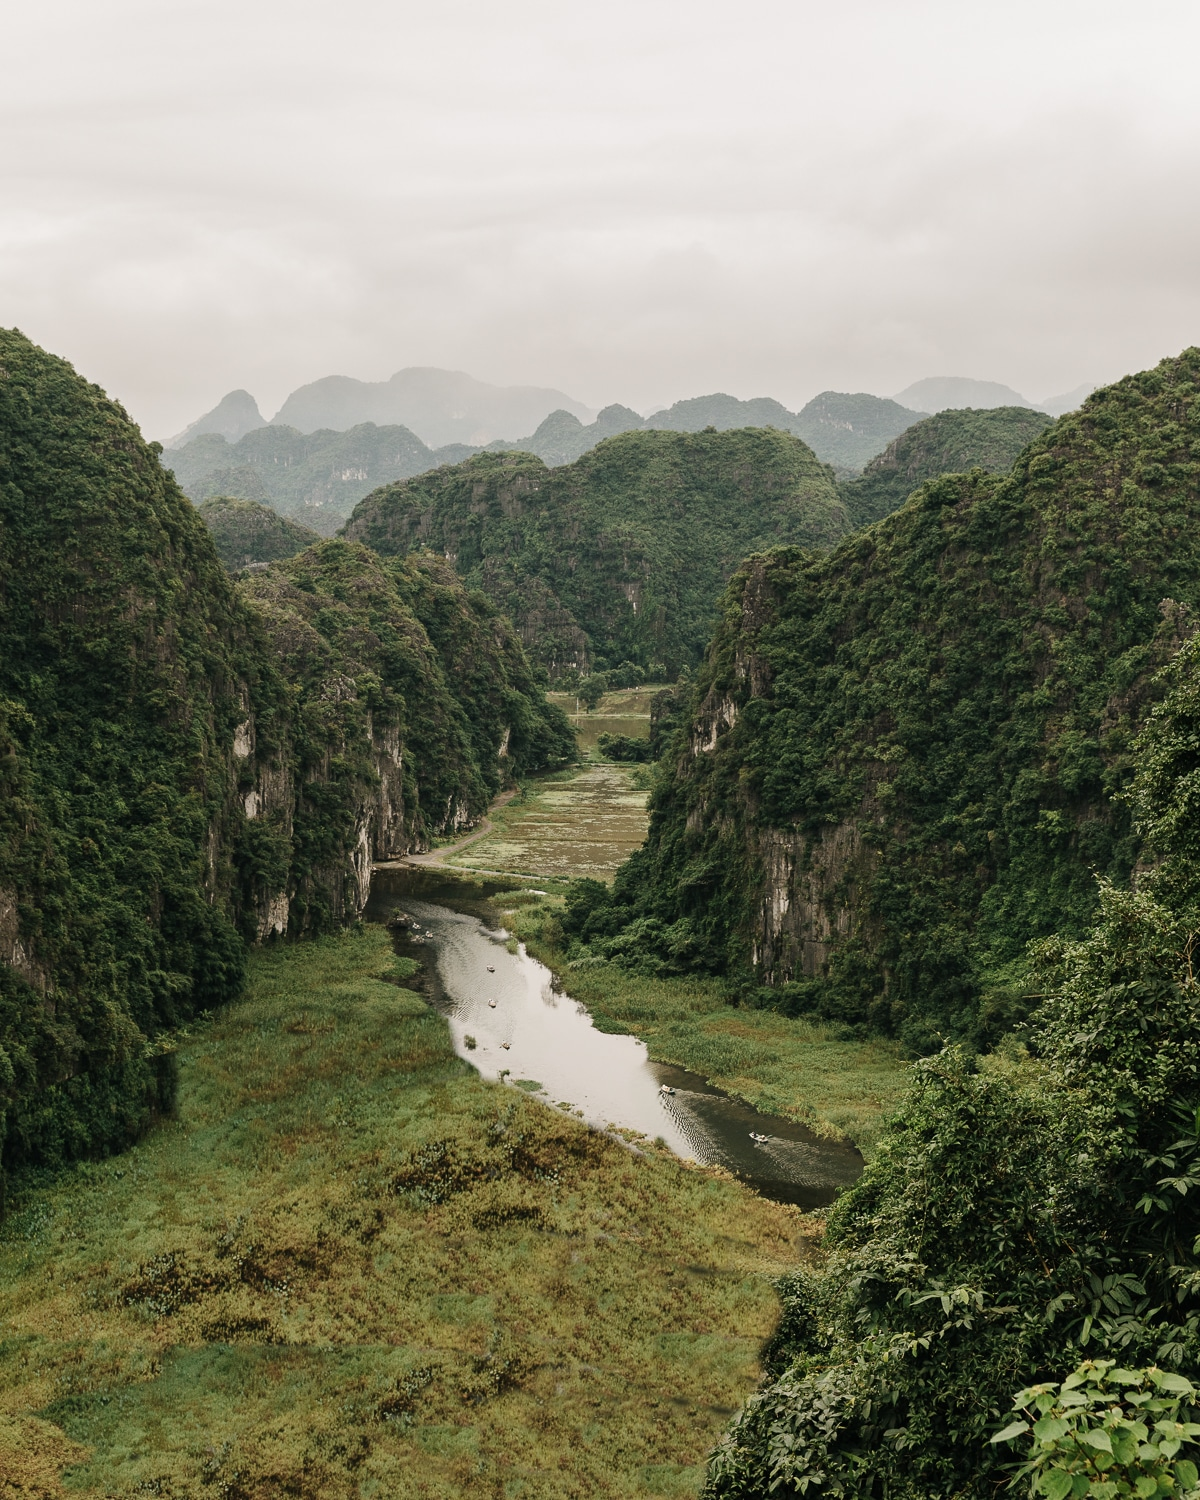 The Ngo Dong river winding through Tam Coc's karst formations.